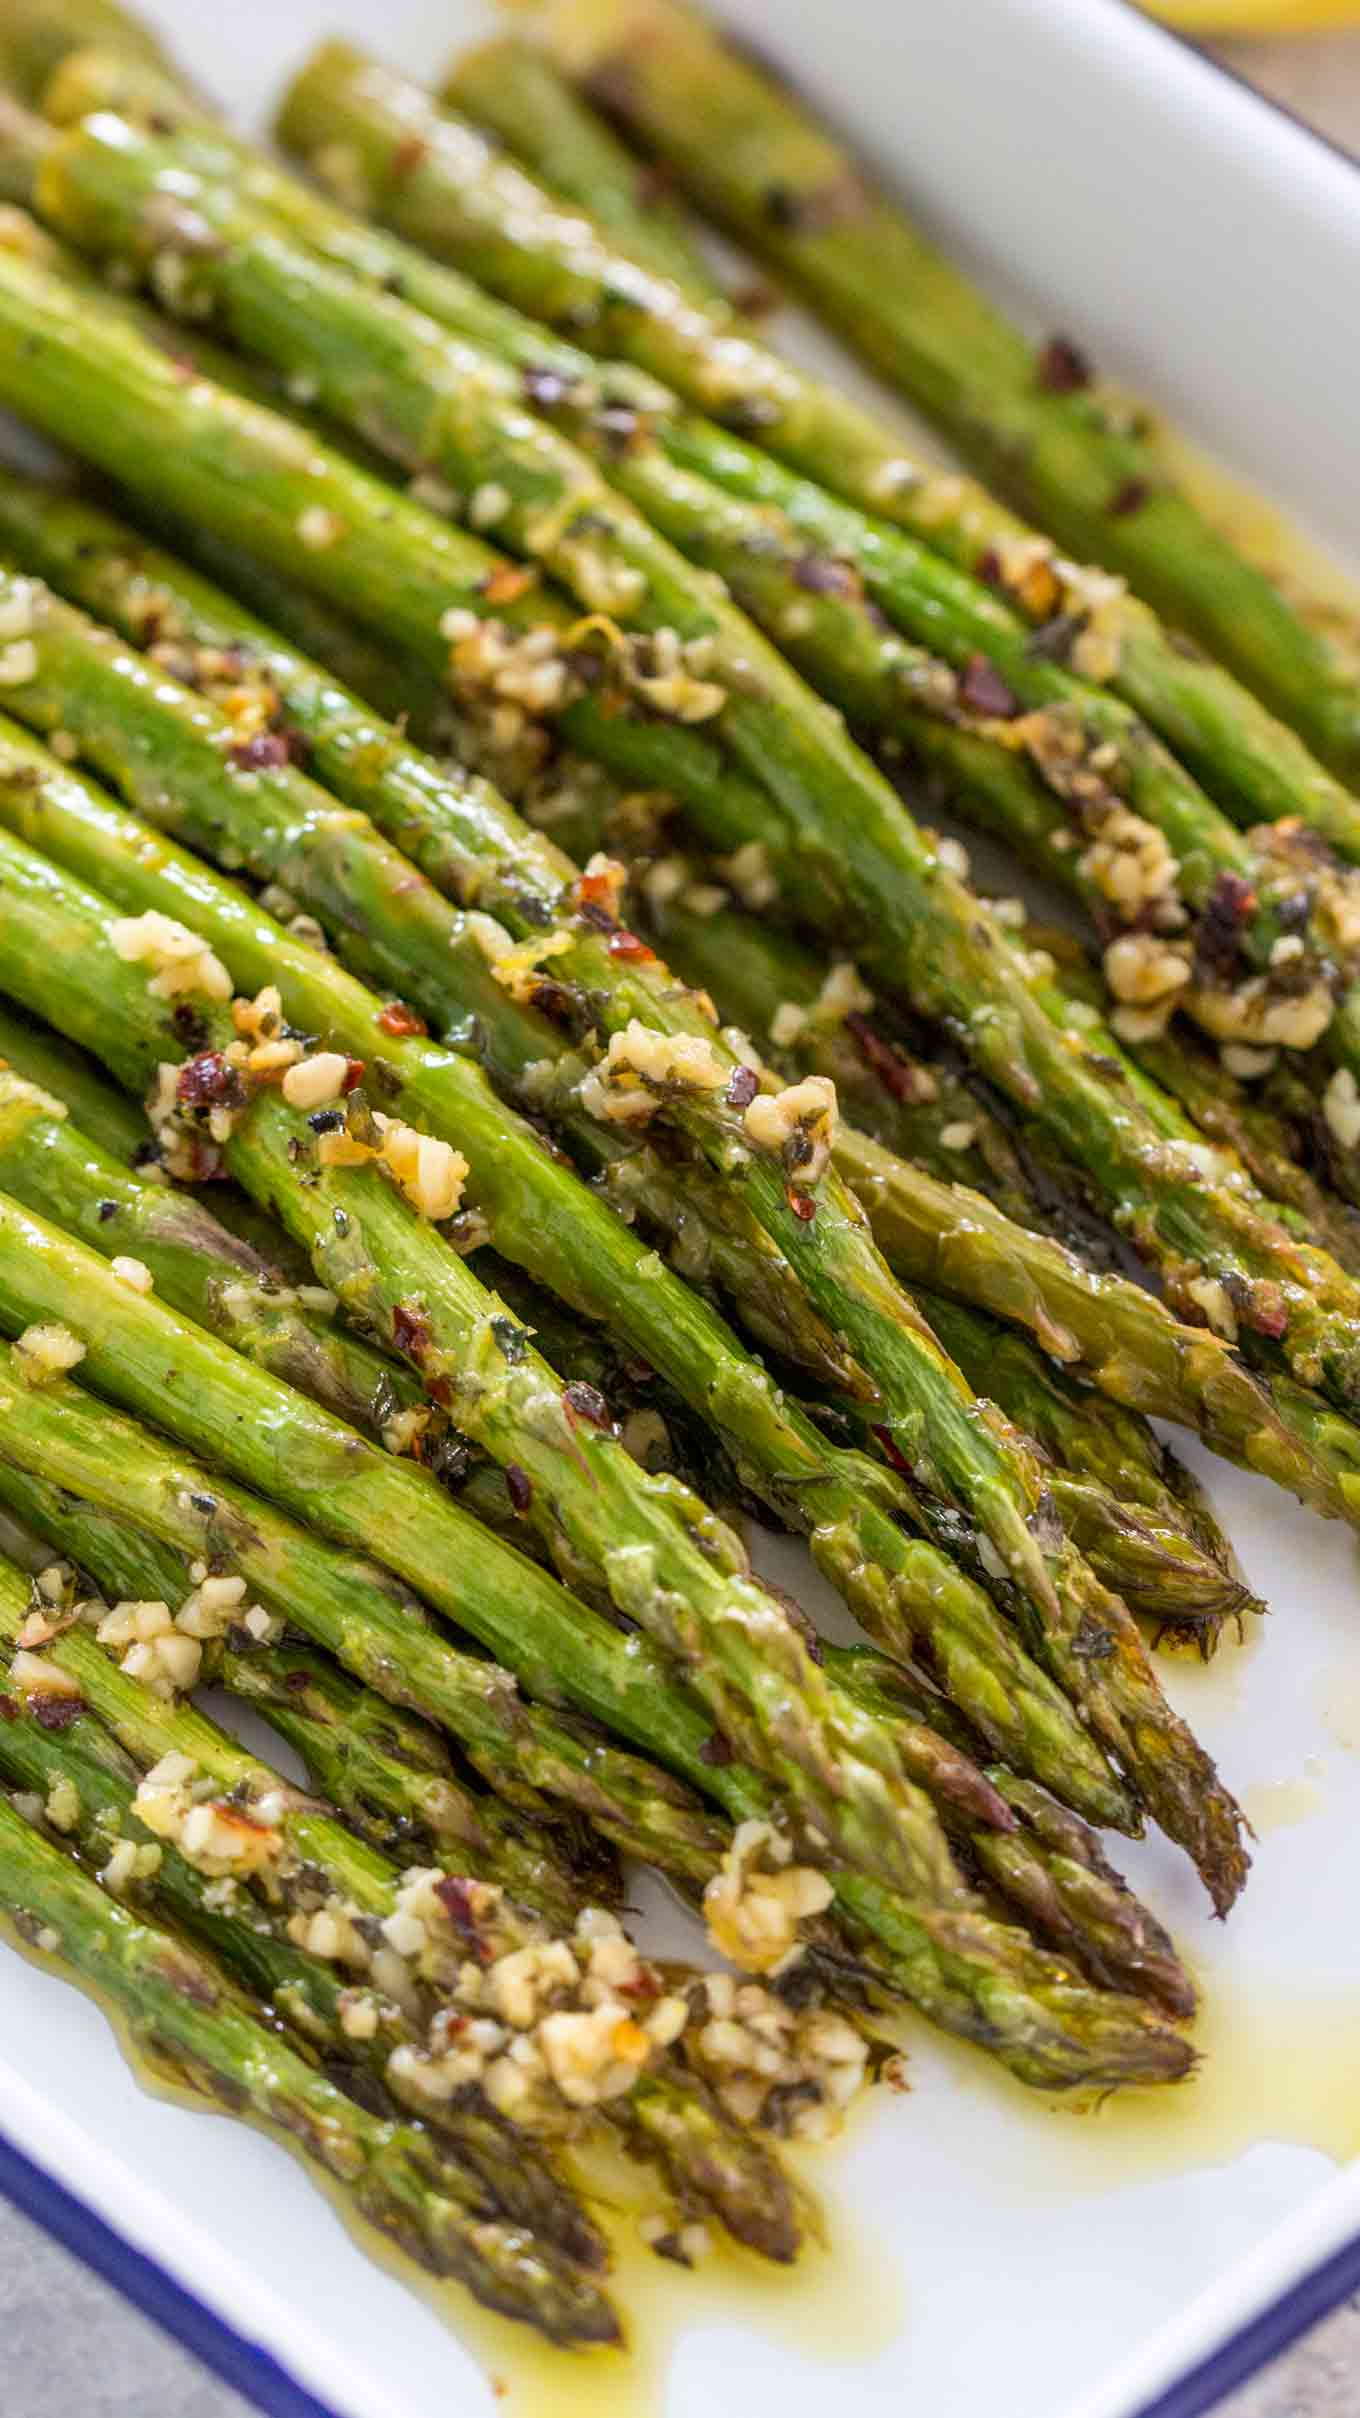 Roasted Asparagus Video Sweet And Savory Meals